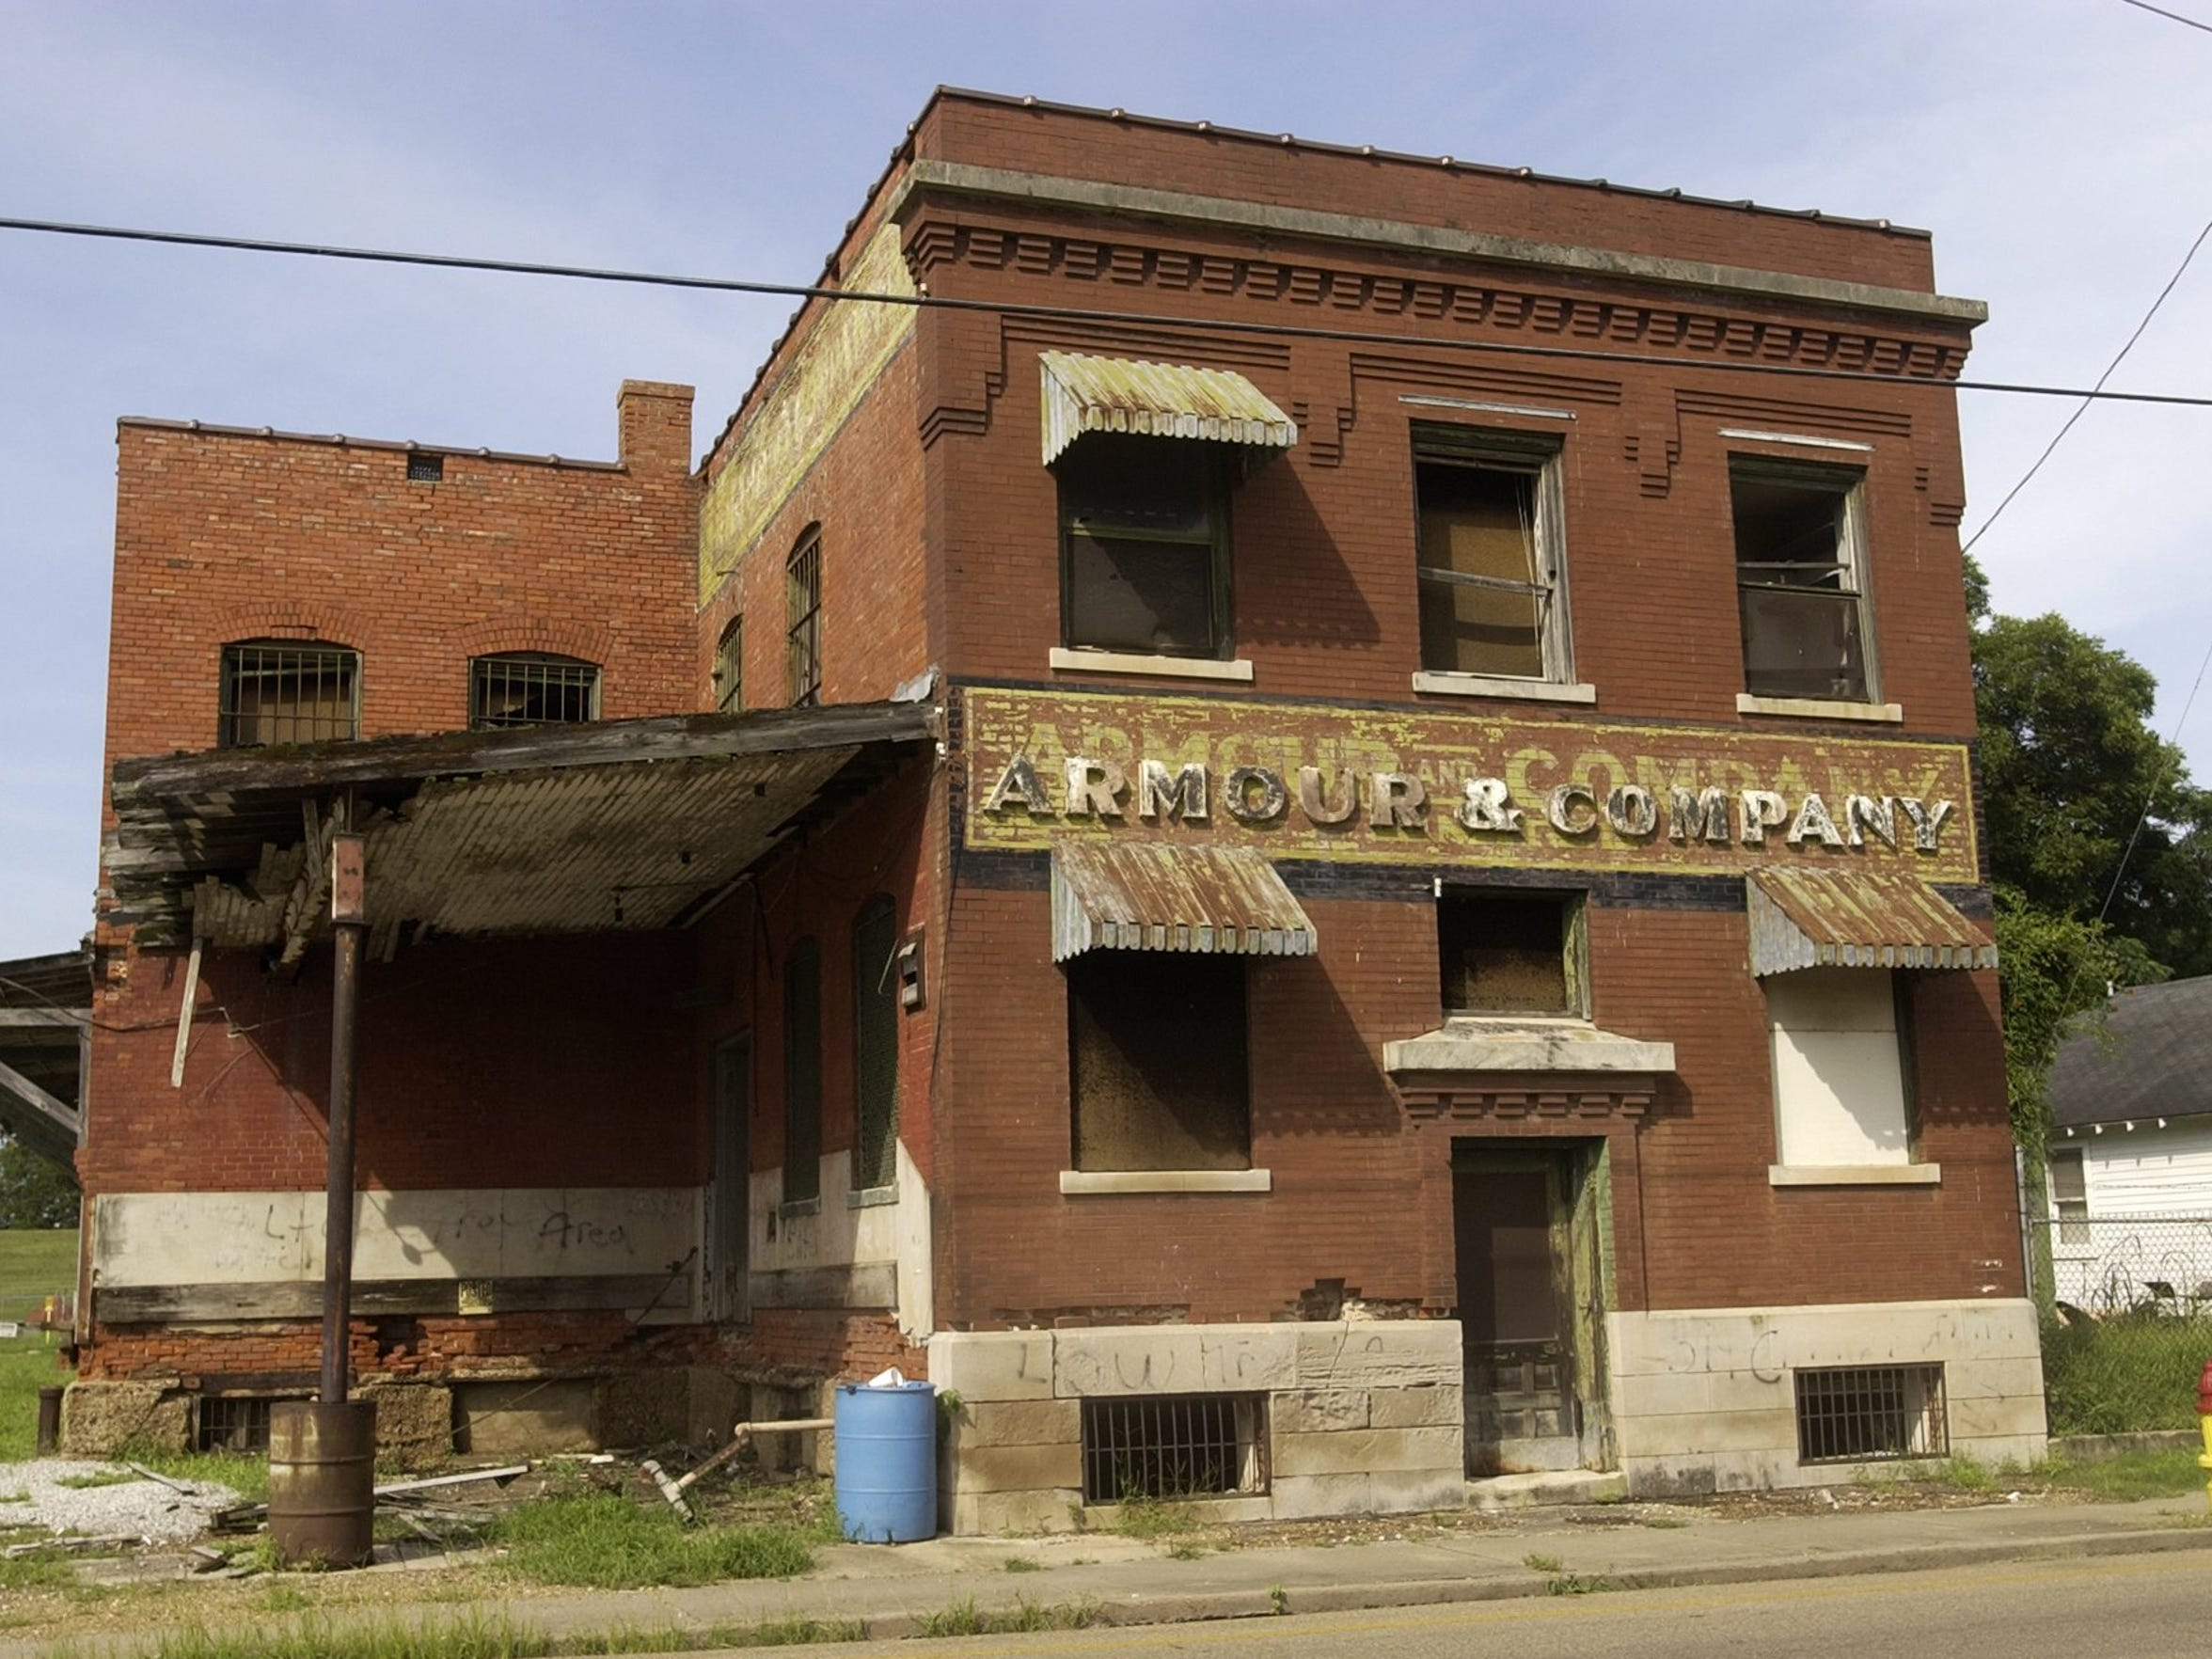 The Armour Building on 3rd Street in Alexandria was